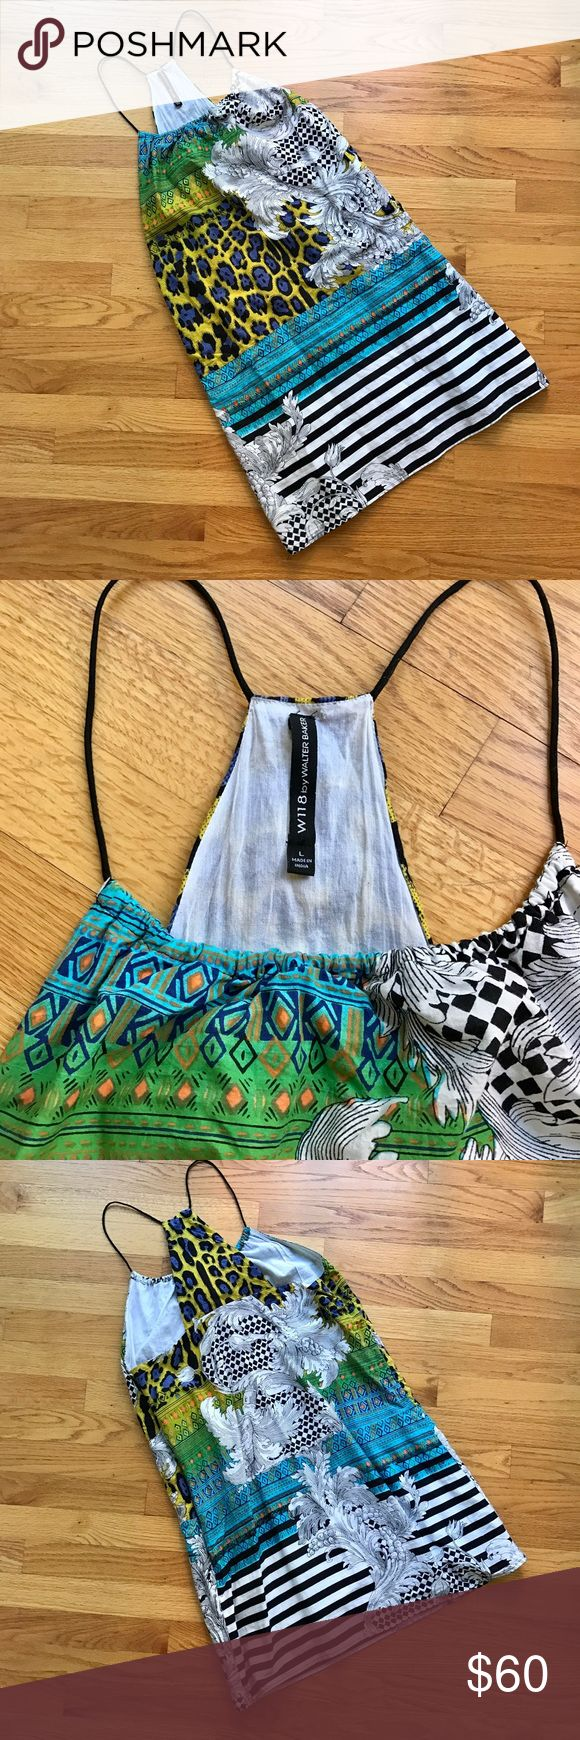 """W118 by Walter Baker Summer Dress 118 by Walter Baker Dress - vivid colors, cool designs, and bright stripes join in this delightful dress. Loose, cool, and comfy.  Hangs lightly from tiny spaghetti straps that form a racerback cut  in the back. Laying it flat, it's 34 1/2"""" long from the top of the shoulder strap to the bottom. longFully lined. In excellent condition. W118 by Walter Baker Dresses"""